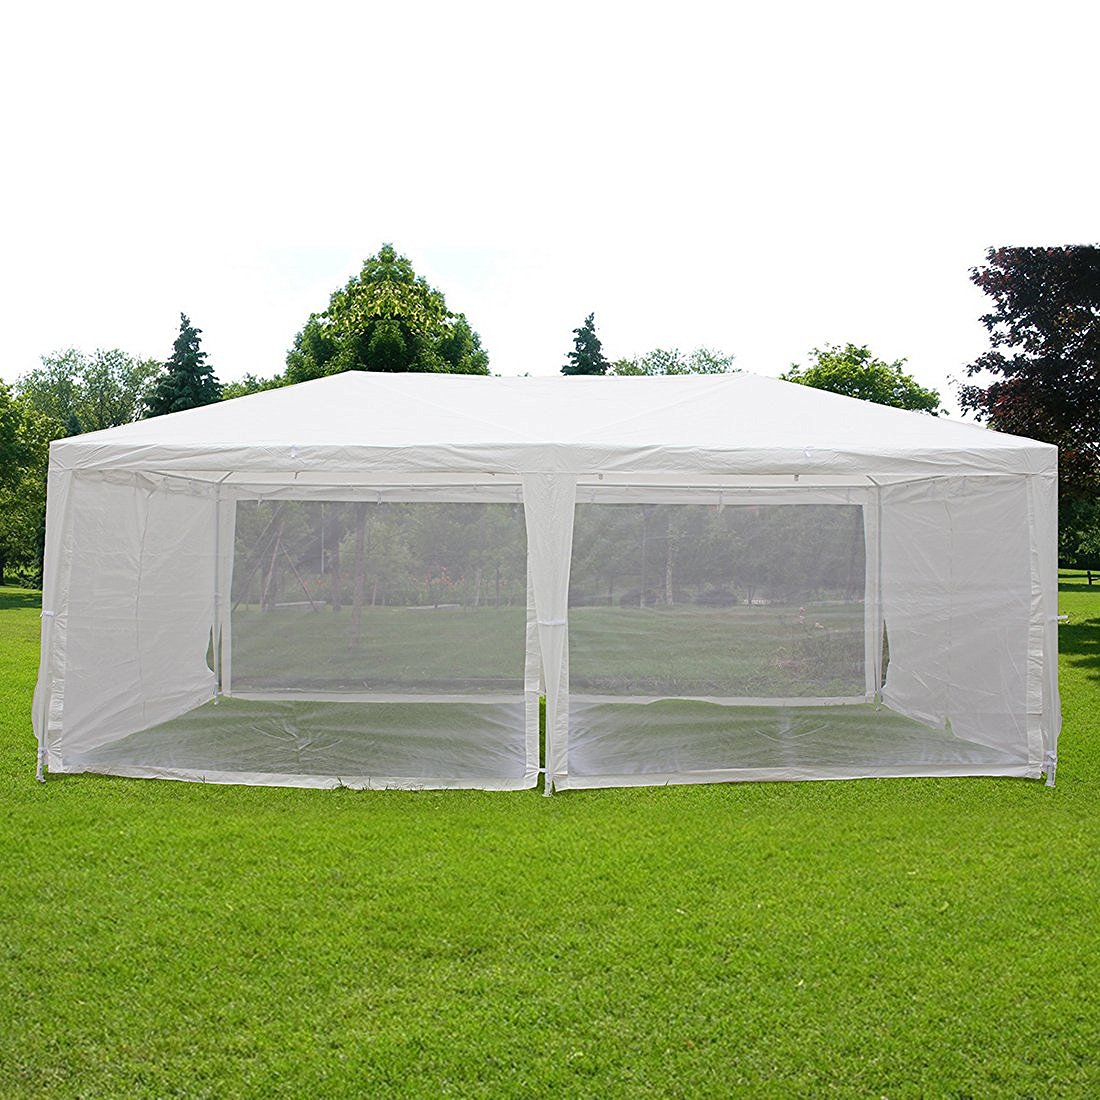 Quictent Outdoor Canopy Gazebo Party Wedding Tent Screen House Sun Shade Shelter With Fully Enclosed Mesh Side Wall 10 X20 White